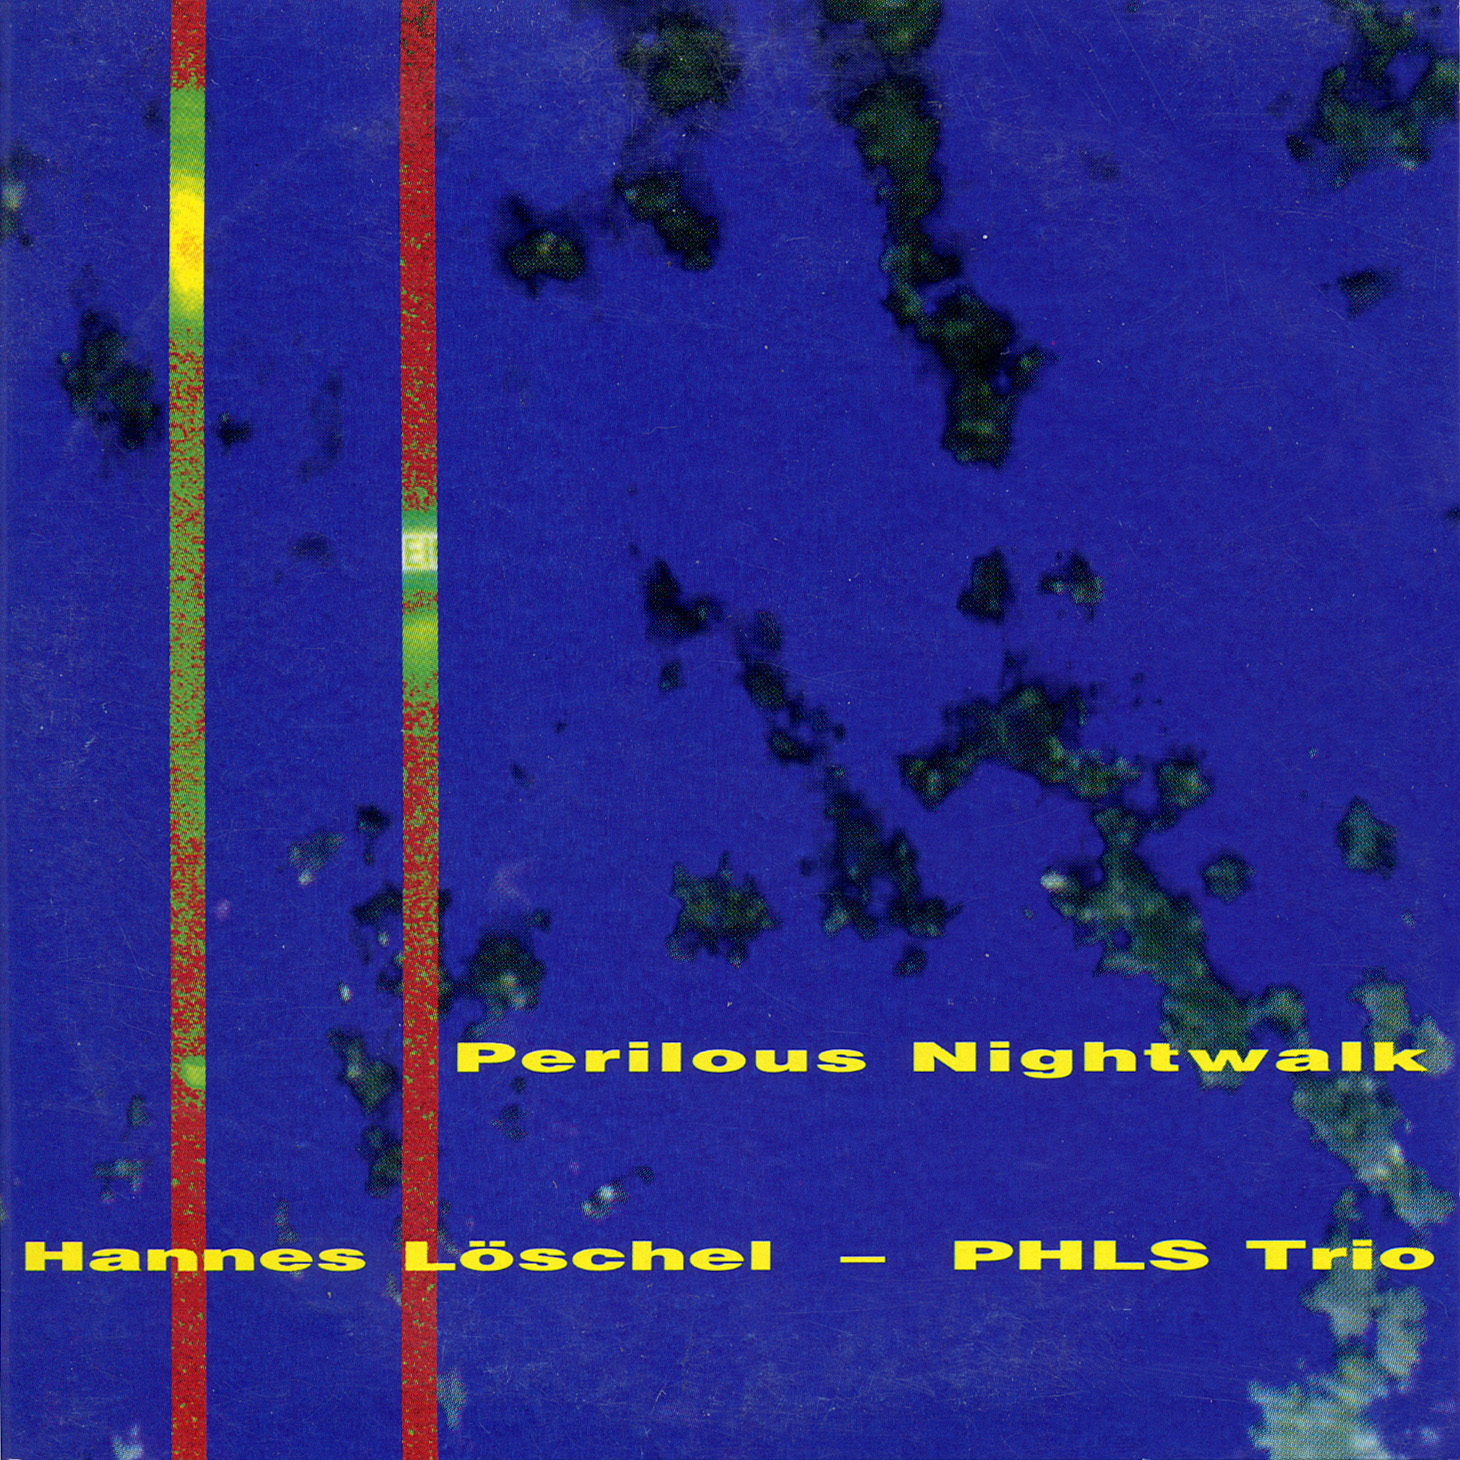 images/perilous-cover.jpg